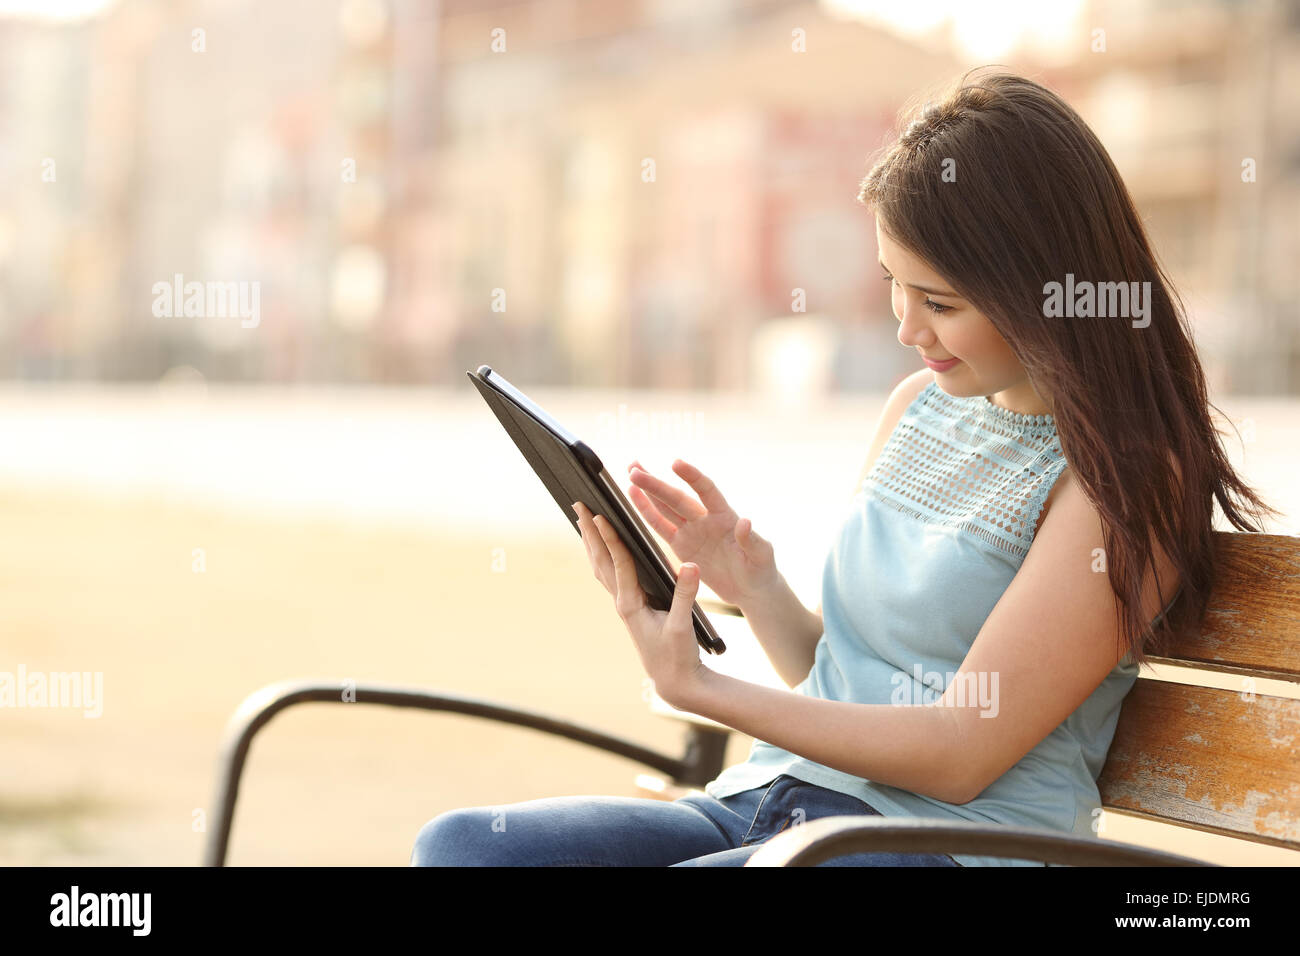 Girl reading and browsing an ebook or a tablet sitting in a bench in a park - Stock Image